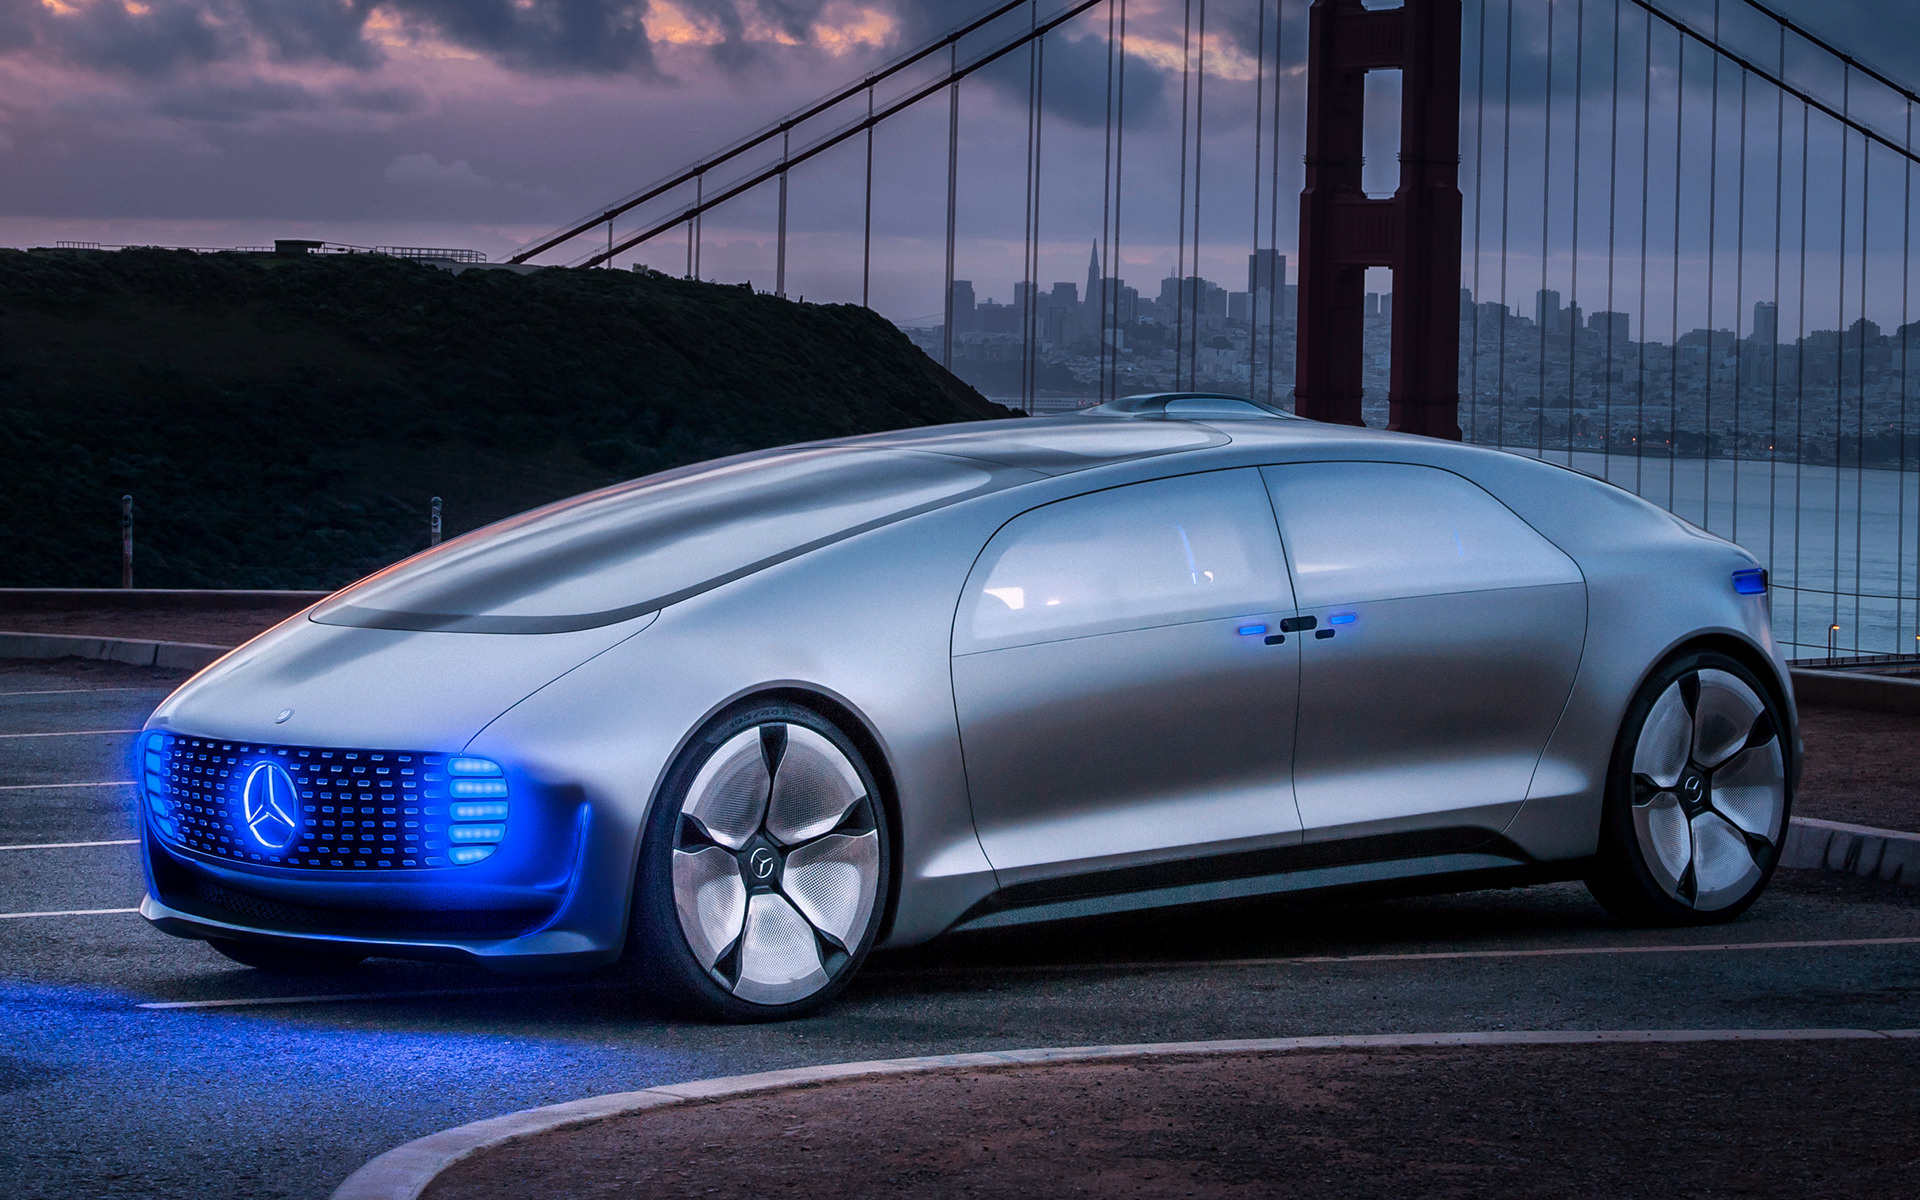 2015 Mercedes Benz F 015 Luxury In Motion Wallpapers And